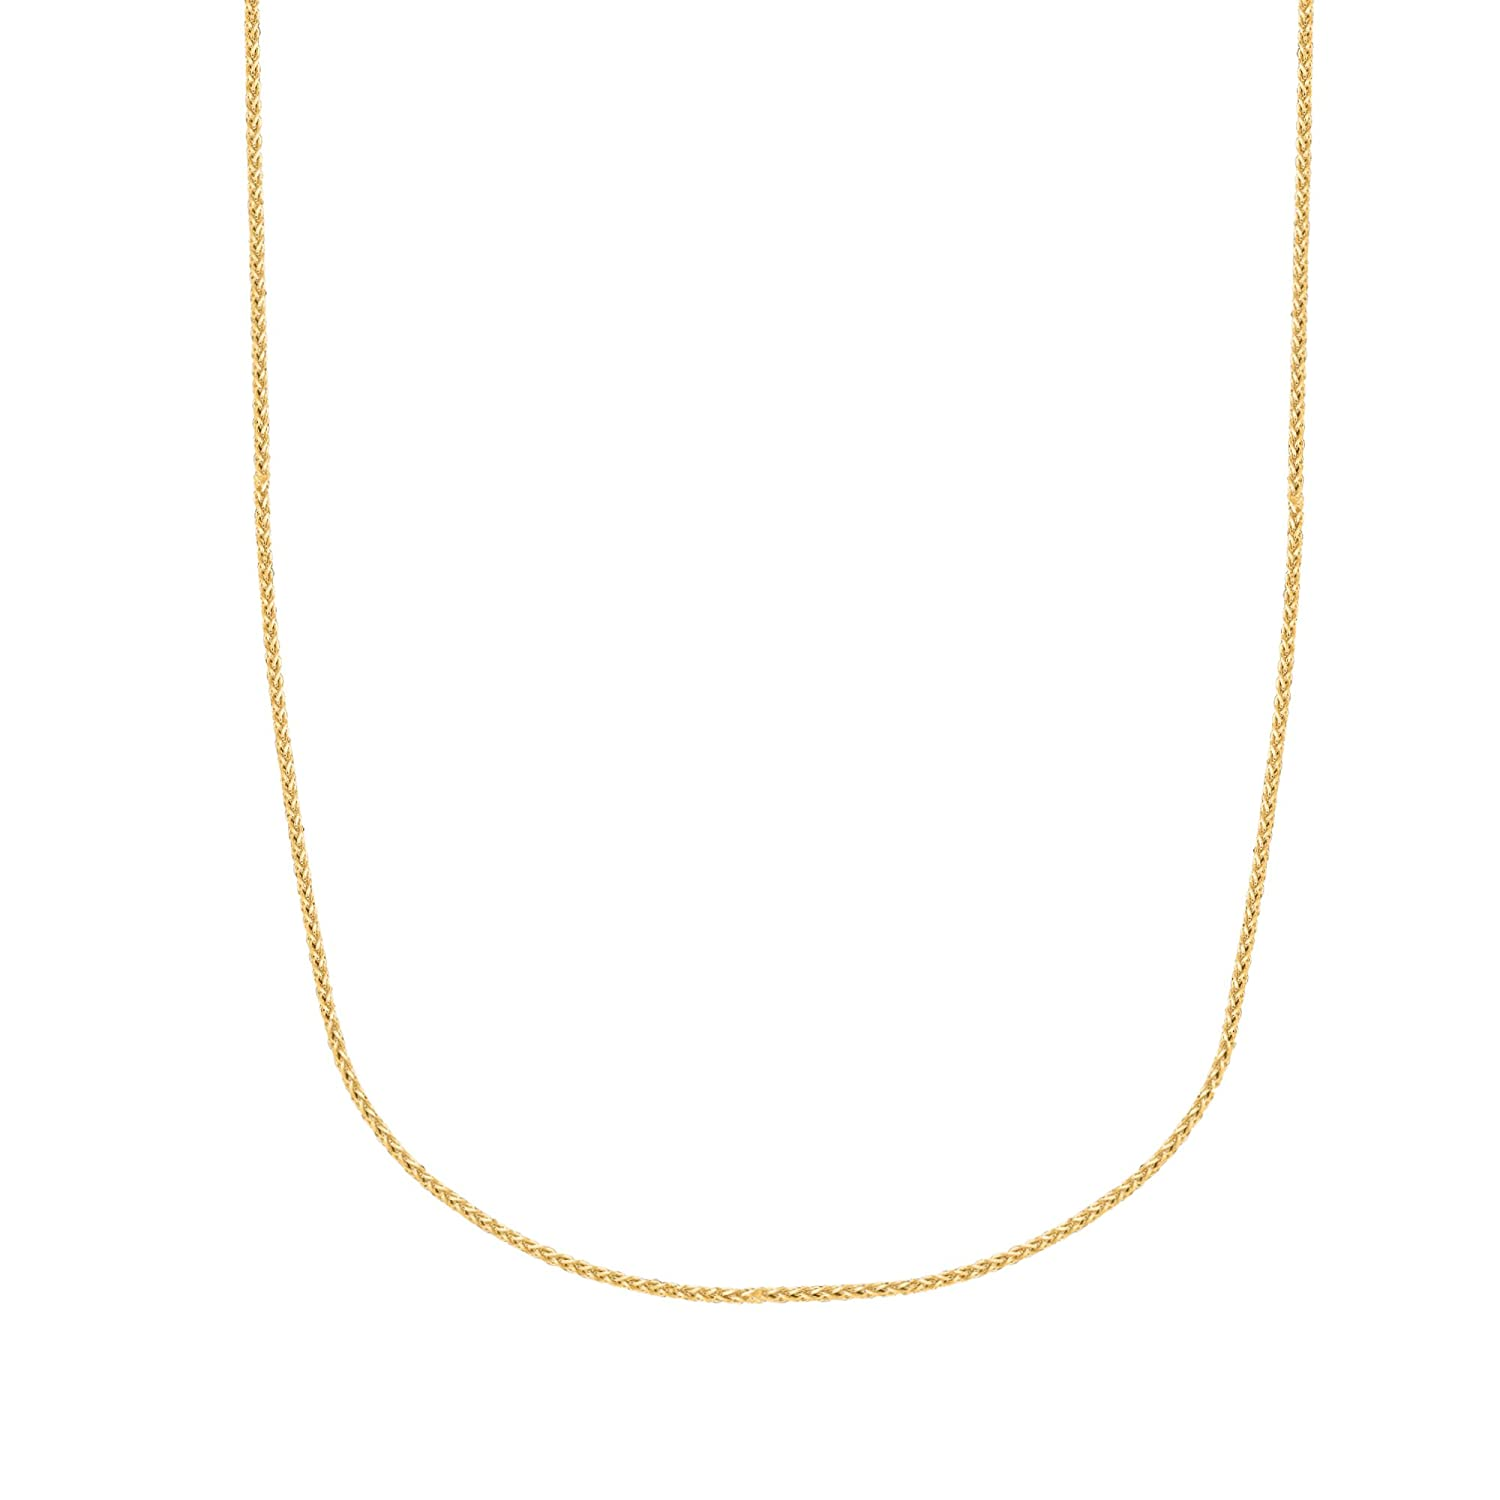 10k Solid Yellow Gold Round Wheat Link Chain Necklace 1mm 20 Inch Ritastephens